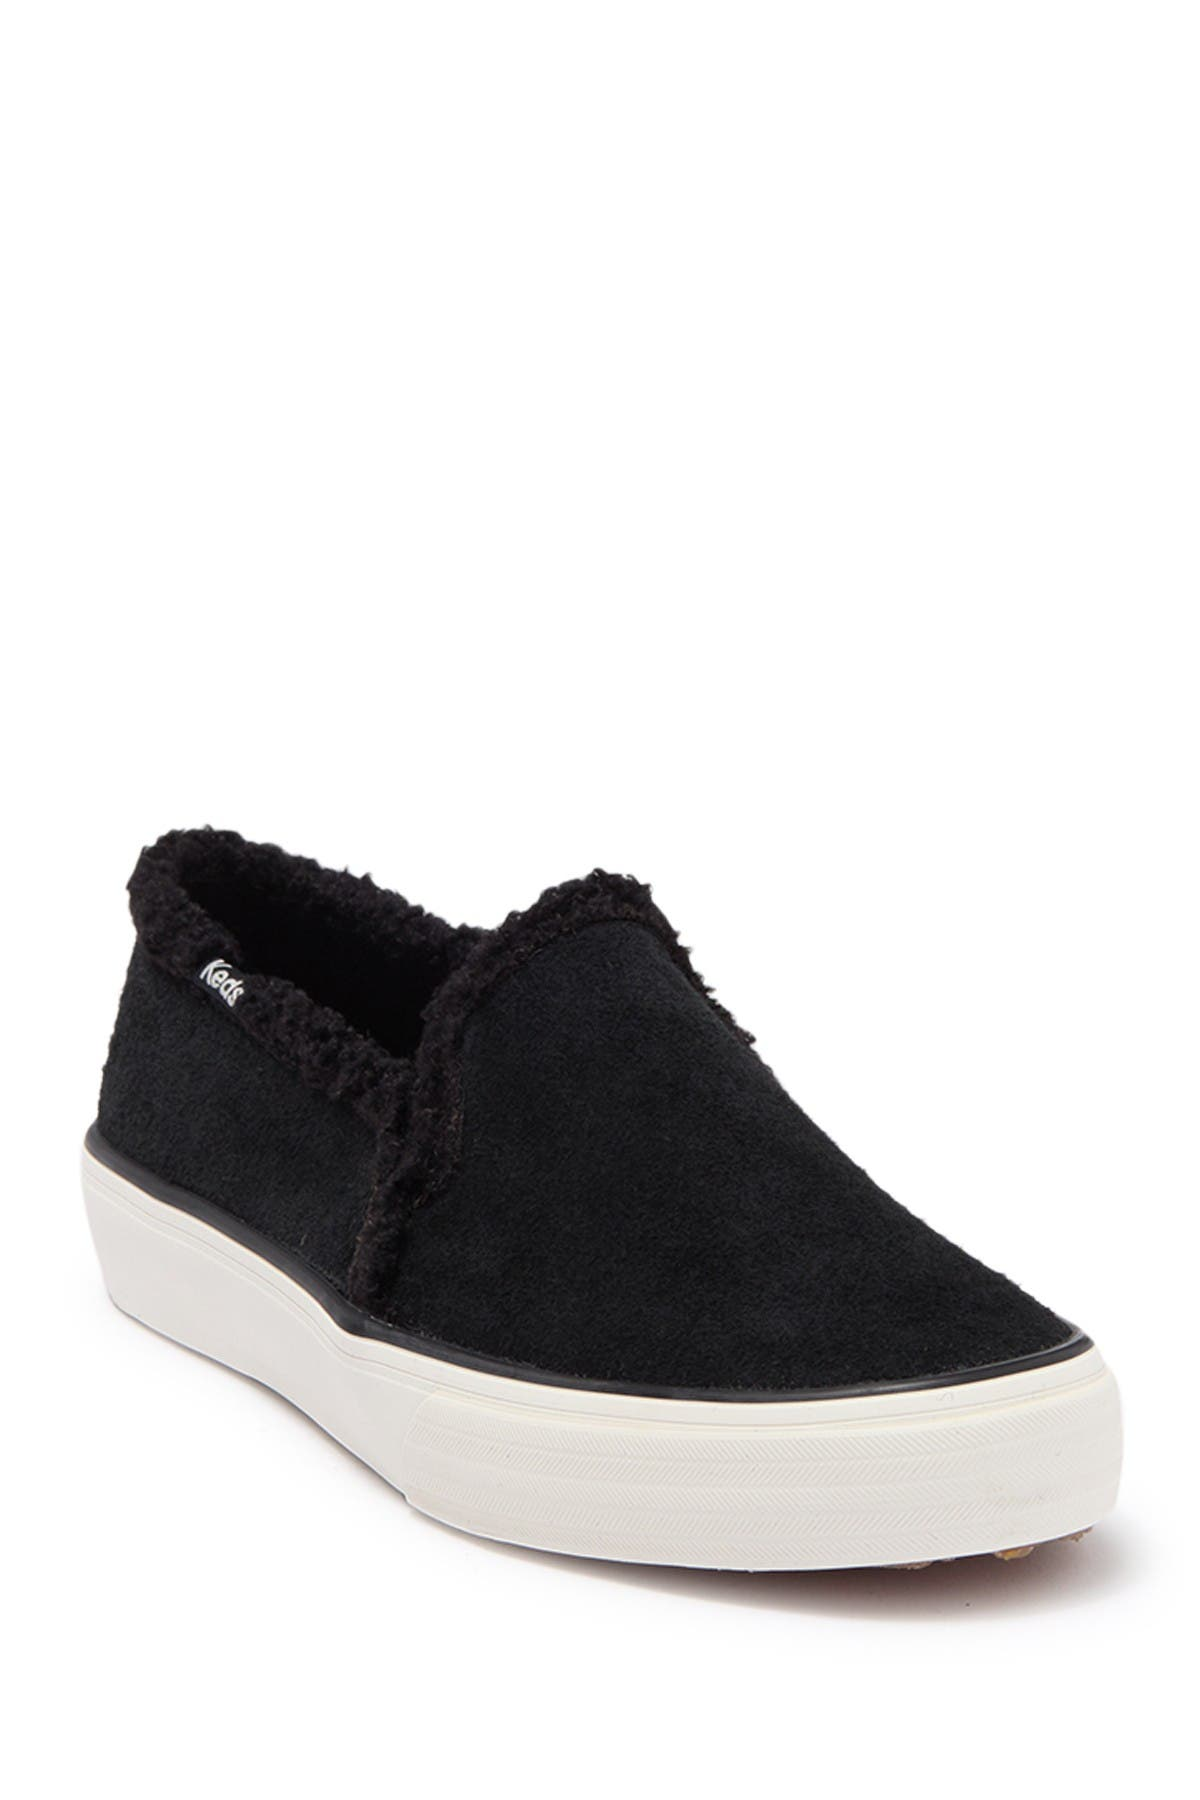 Image of Keds Double Decker Faux Shearling Lined Slip-On Sneaker